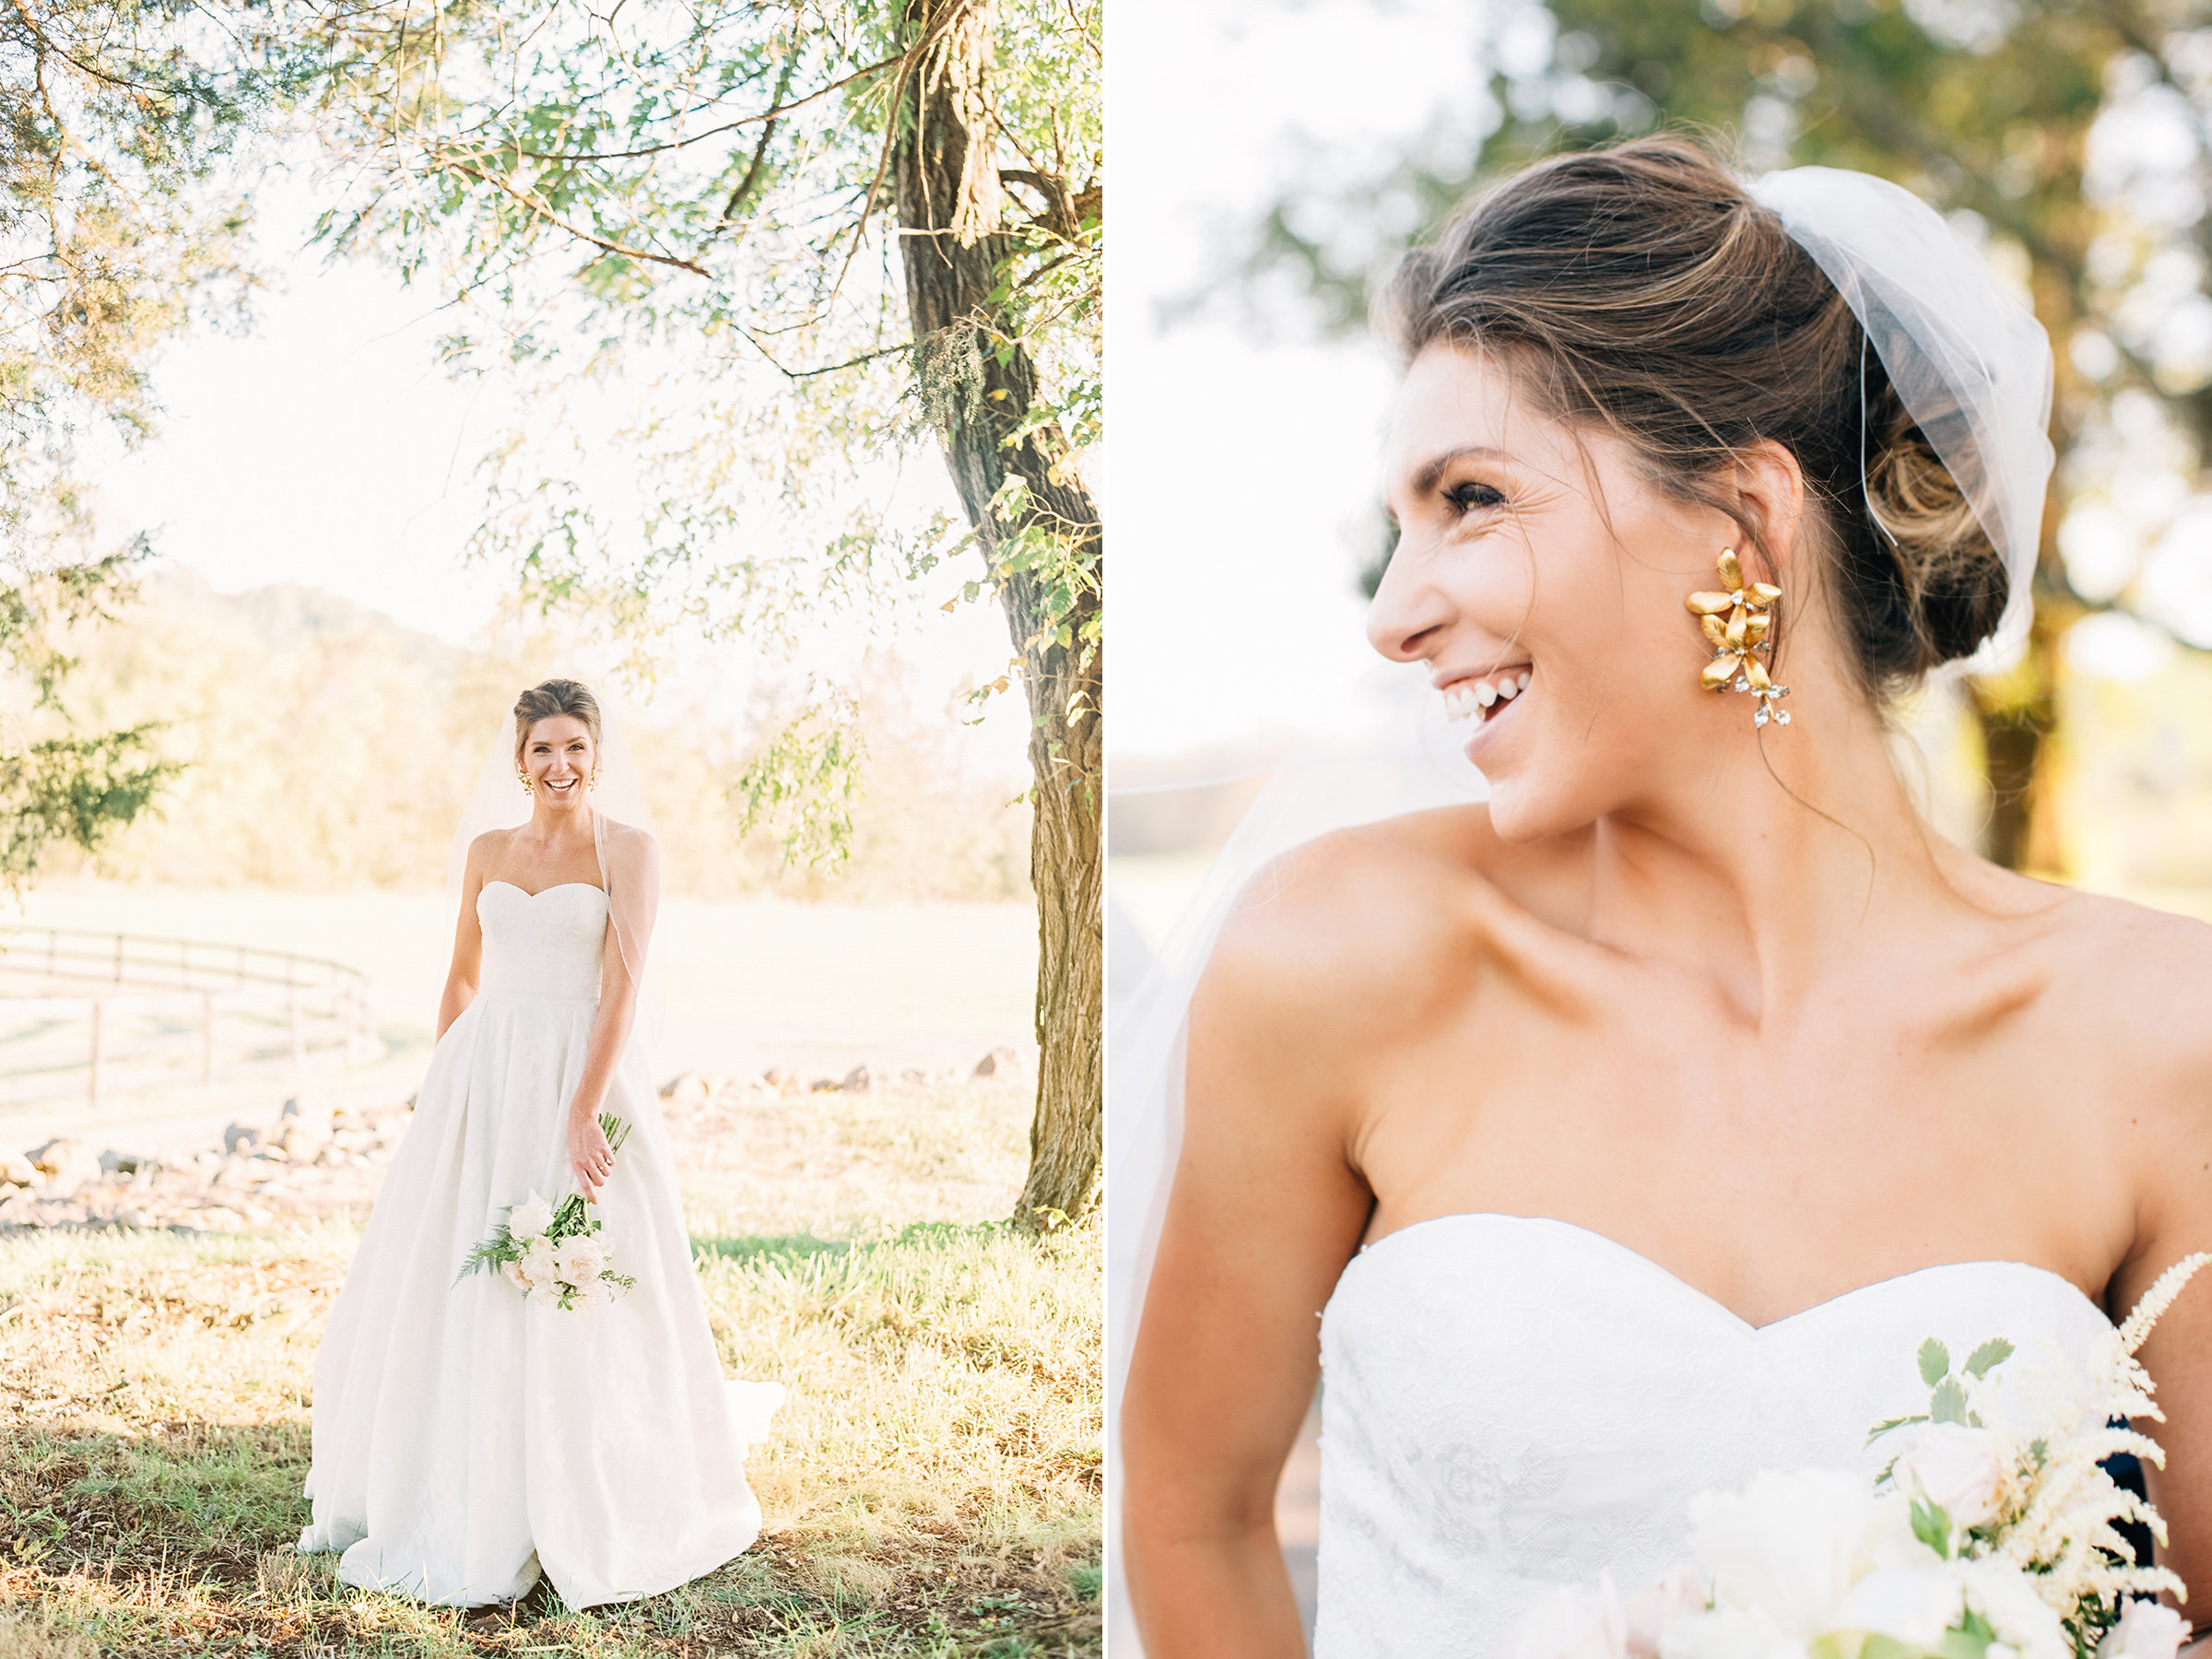 KatieStoopsPhotography-charlottesville wedding-farm wedding30.jpg